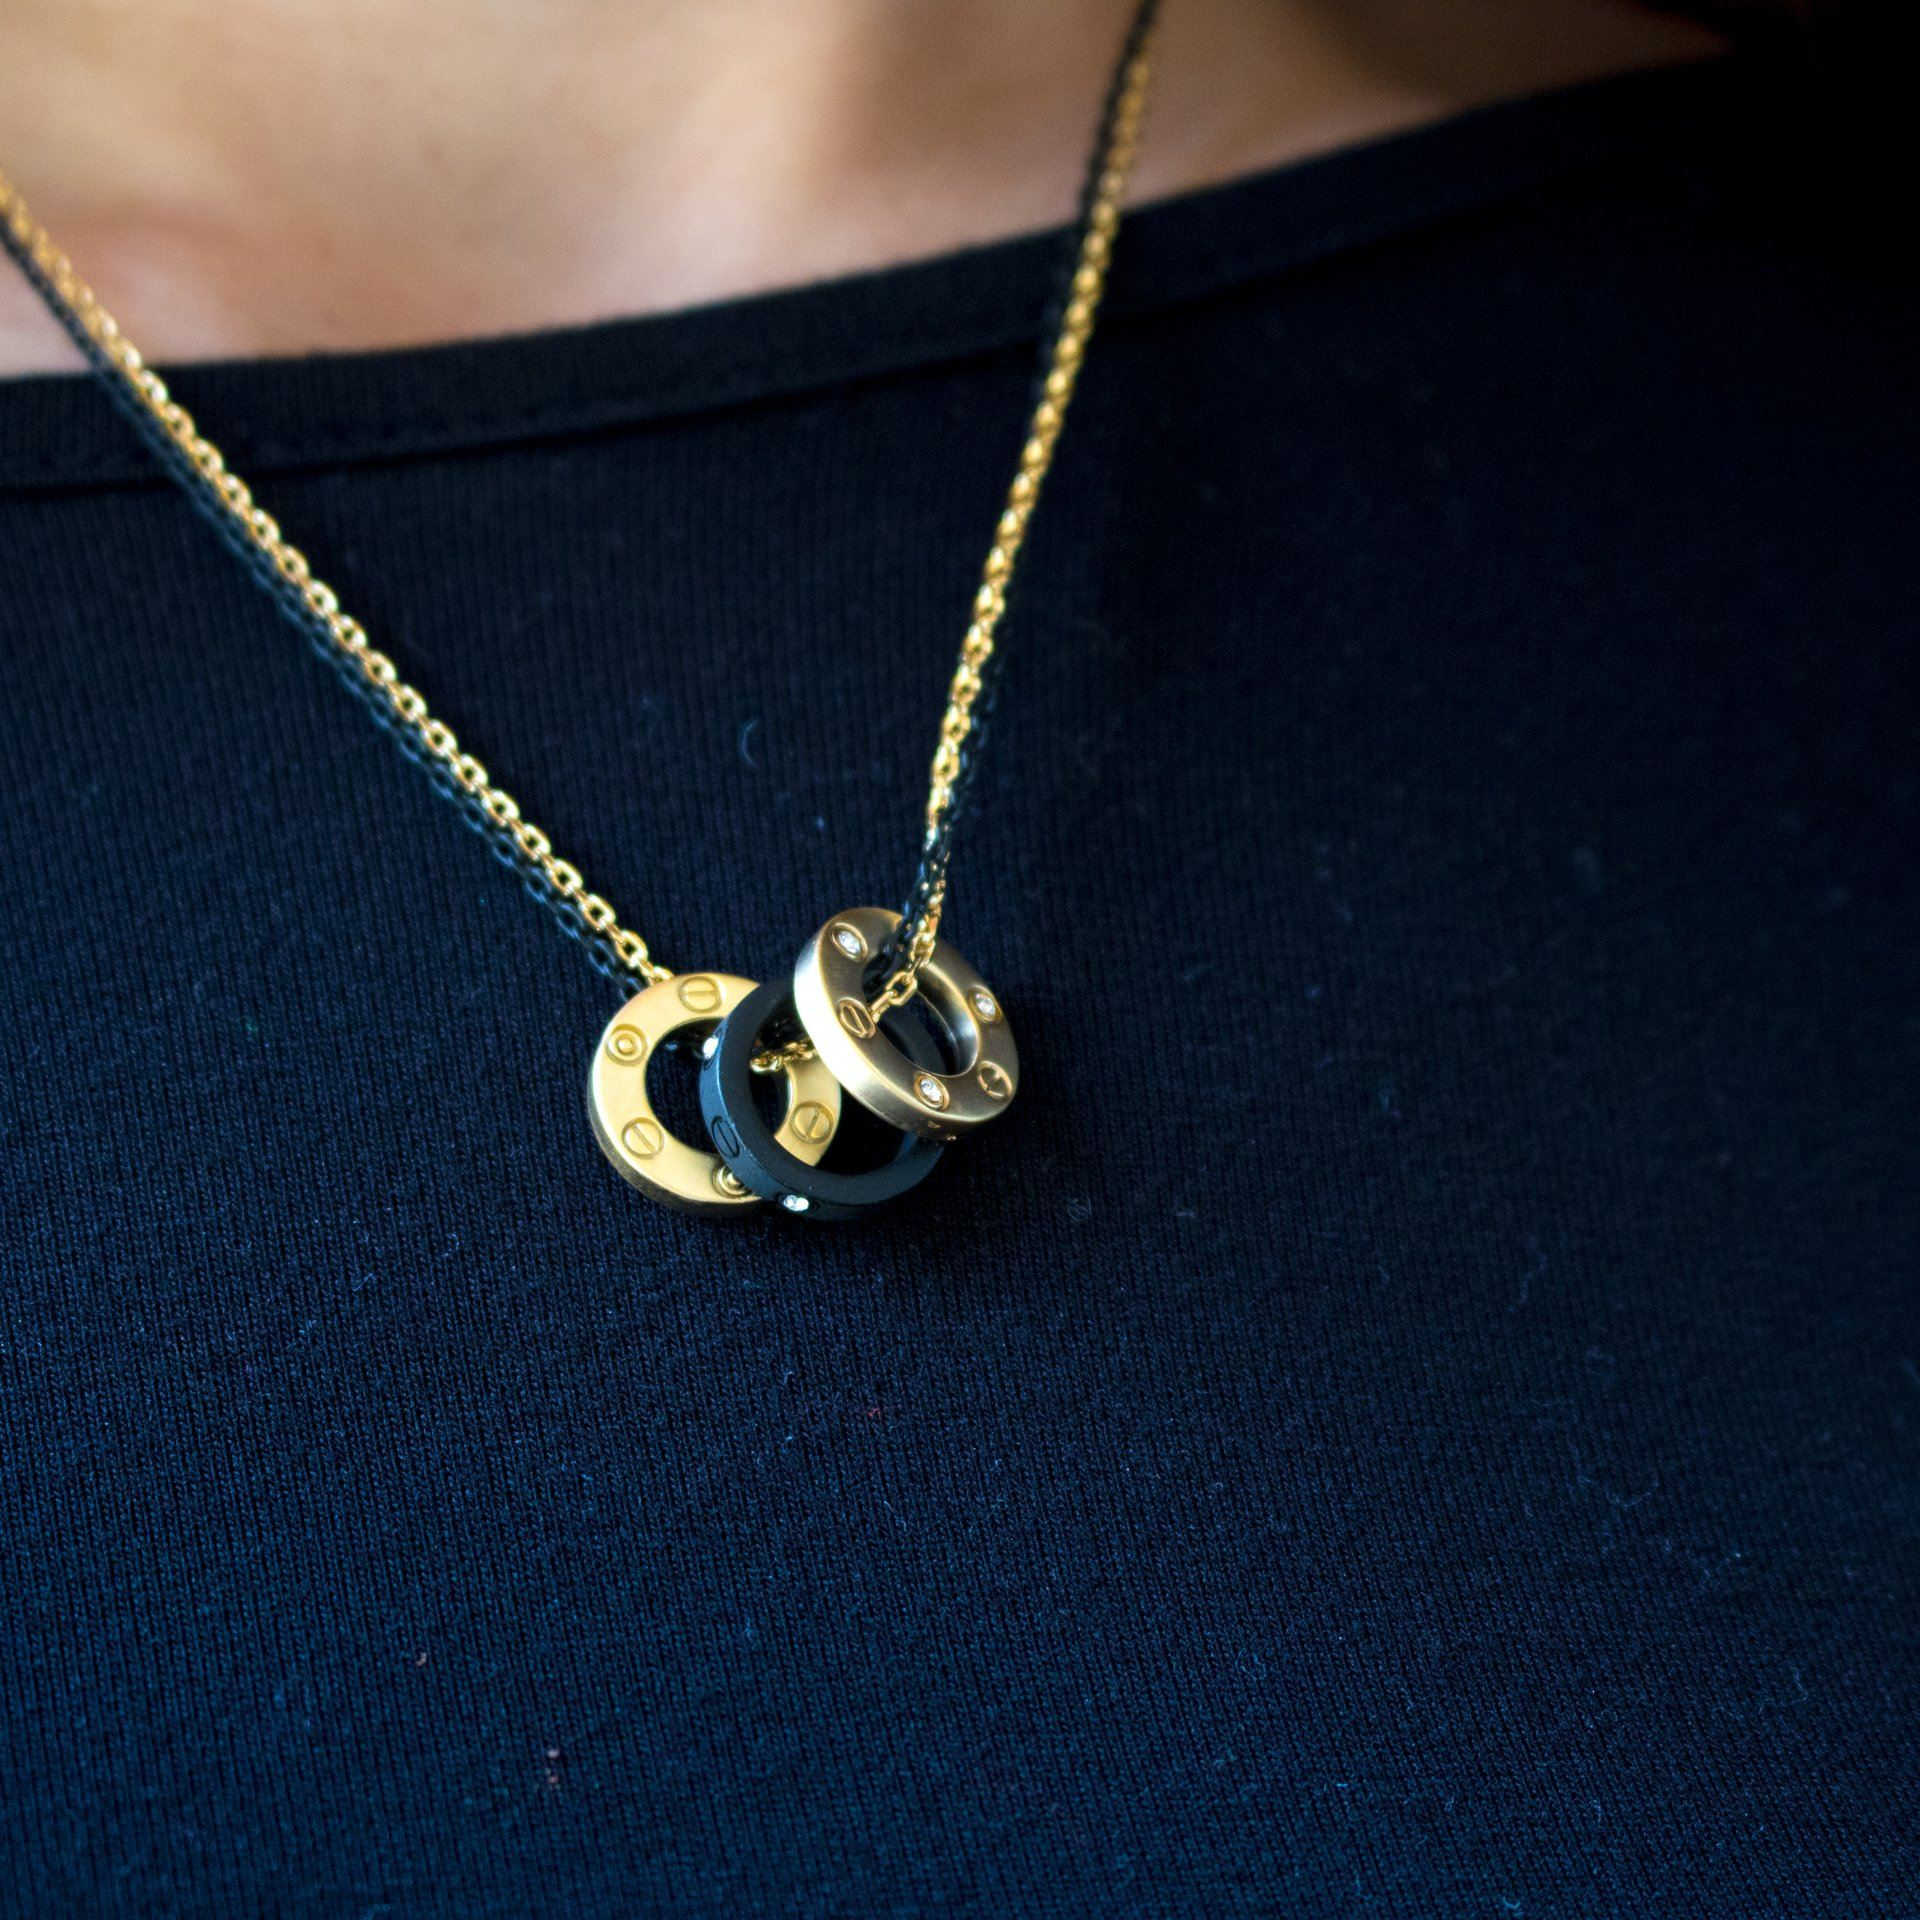 Triple Ring Pendant Necklace - Arlo and Arrows